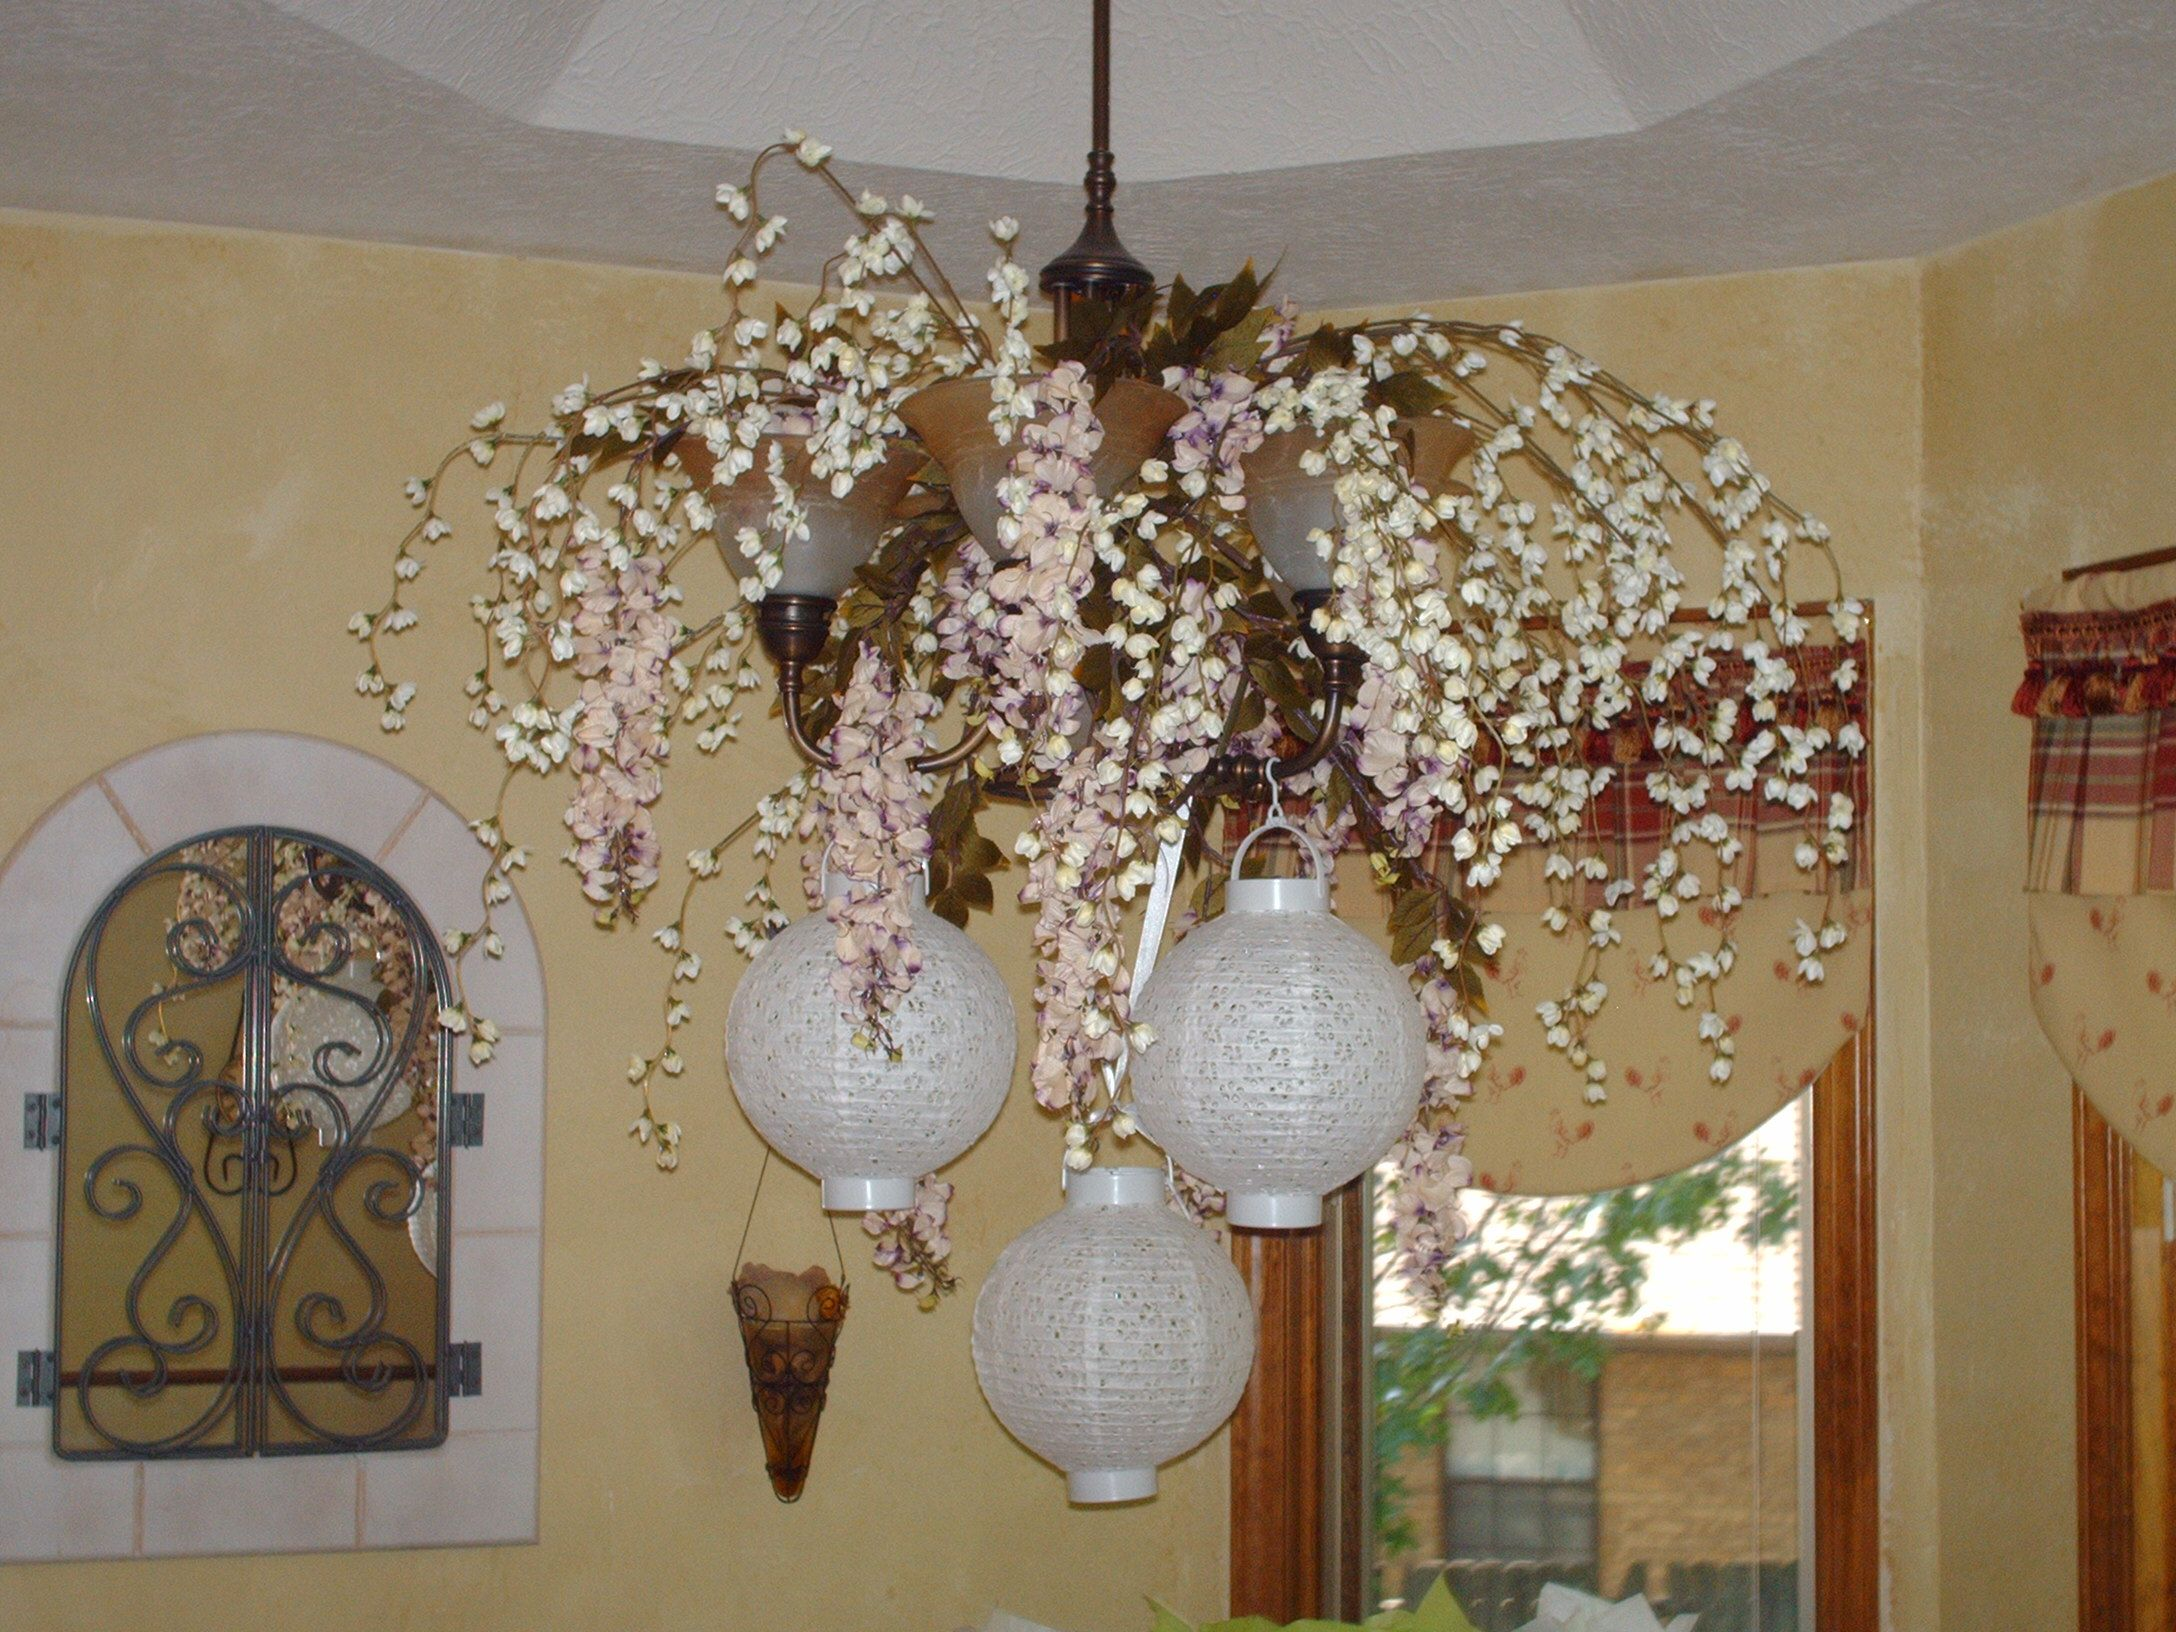 decor on chandelier decorating ideas pinterest